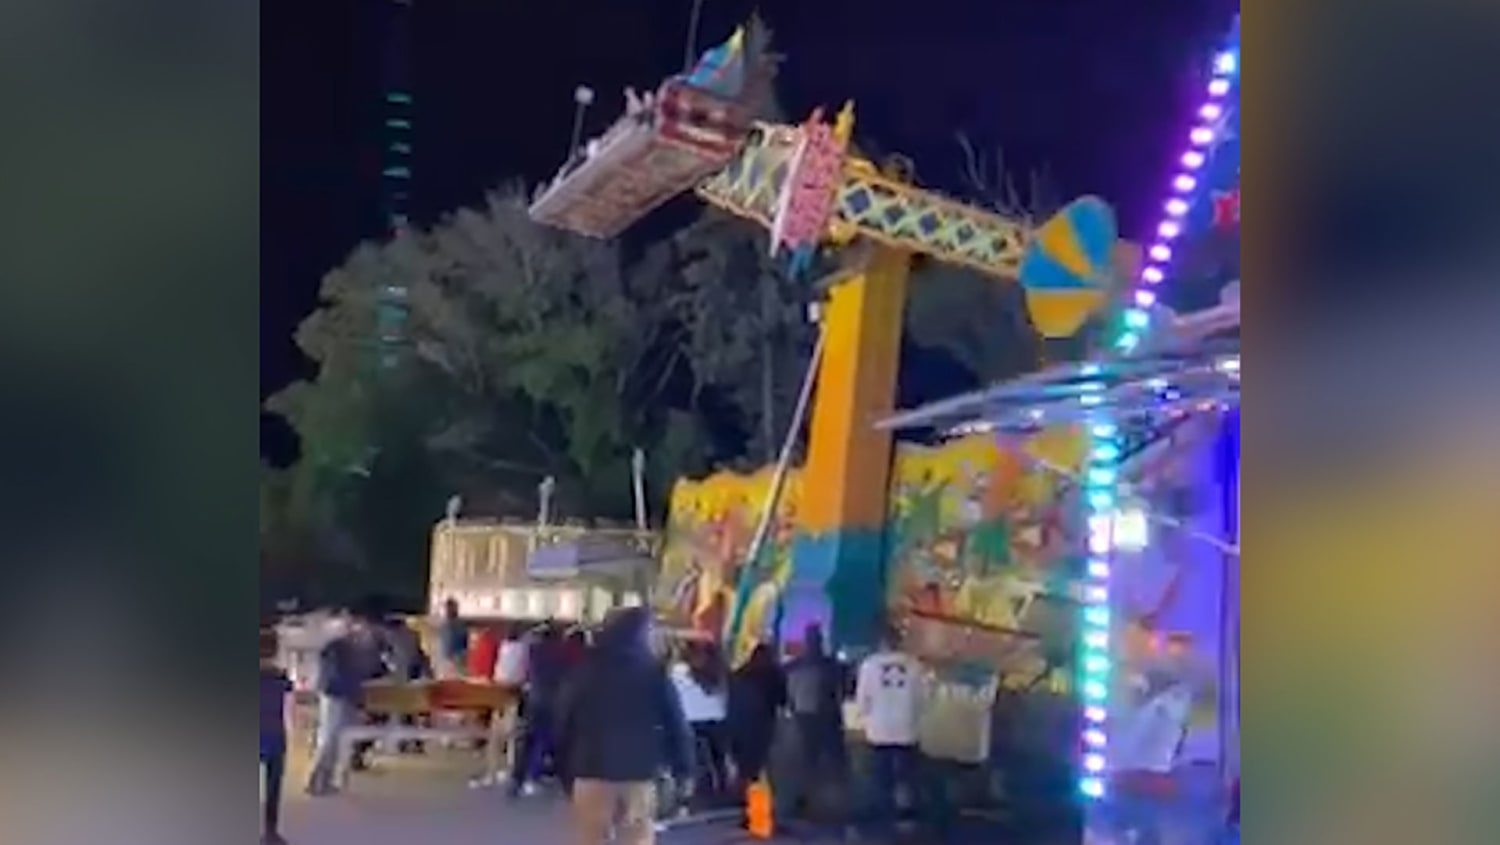 Thrill Ride Dismantled After Malfunctioning During Popular Michigan Festival